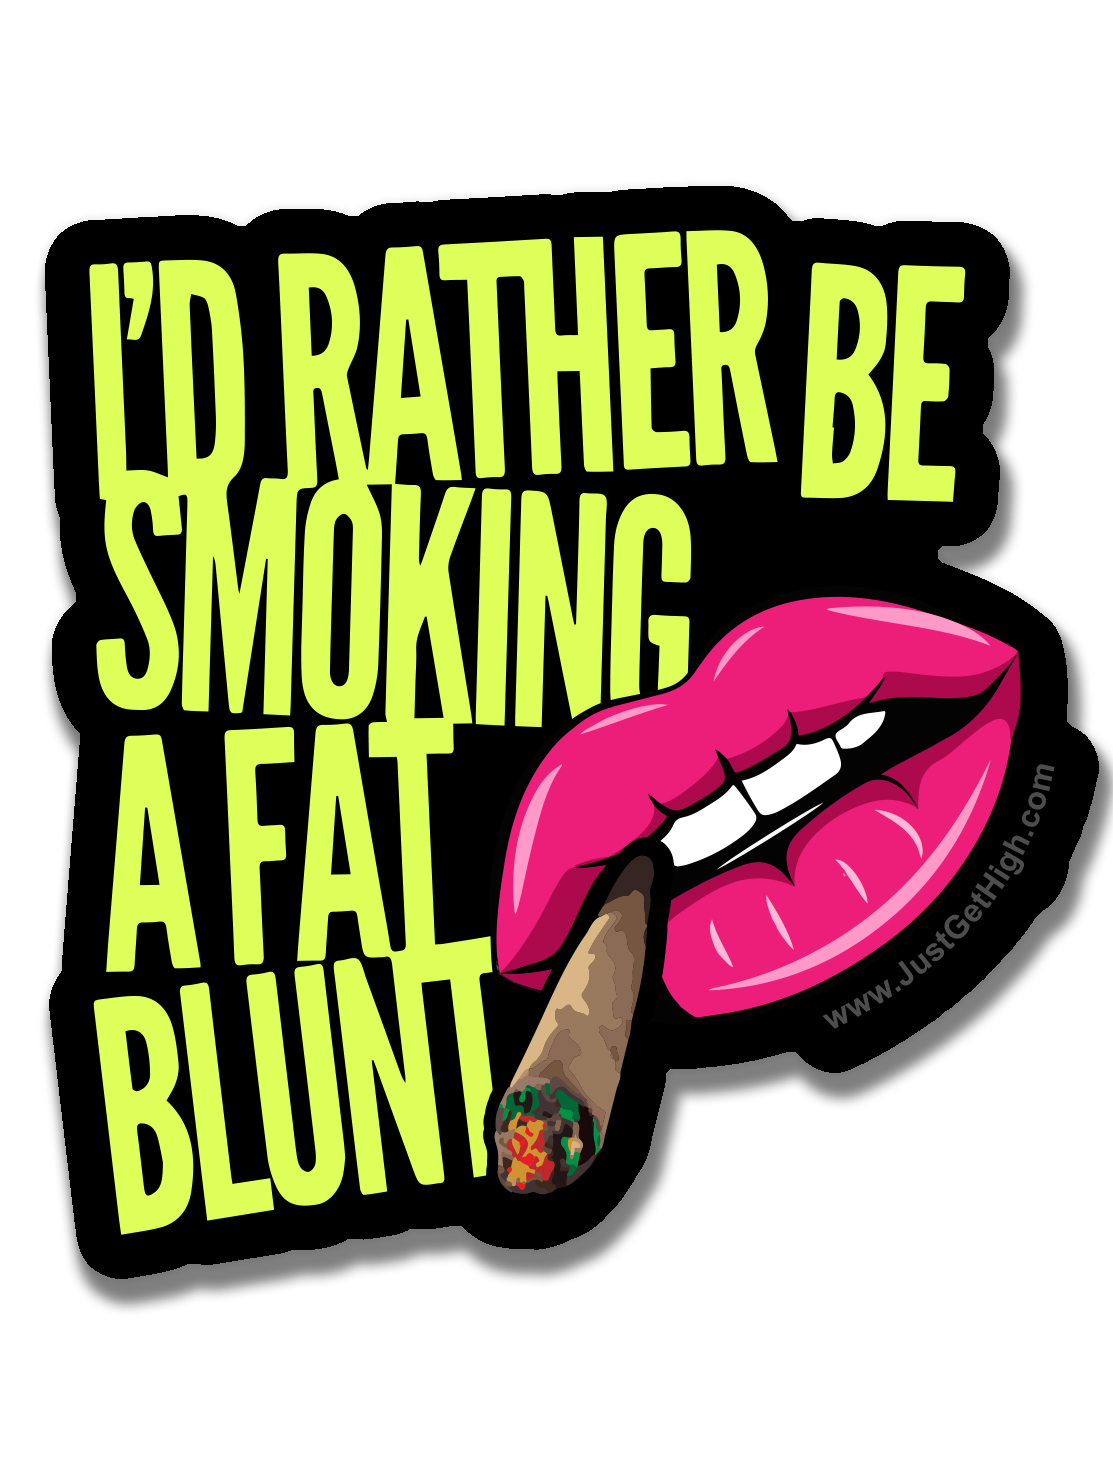 just get high_ stickers_id rather be smoking a blunt